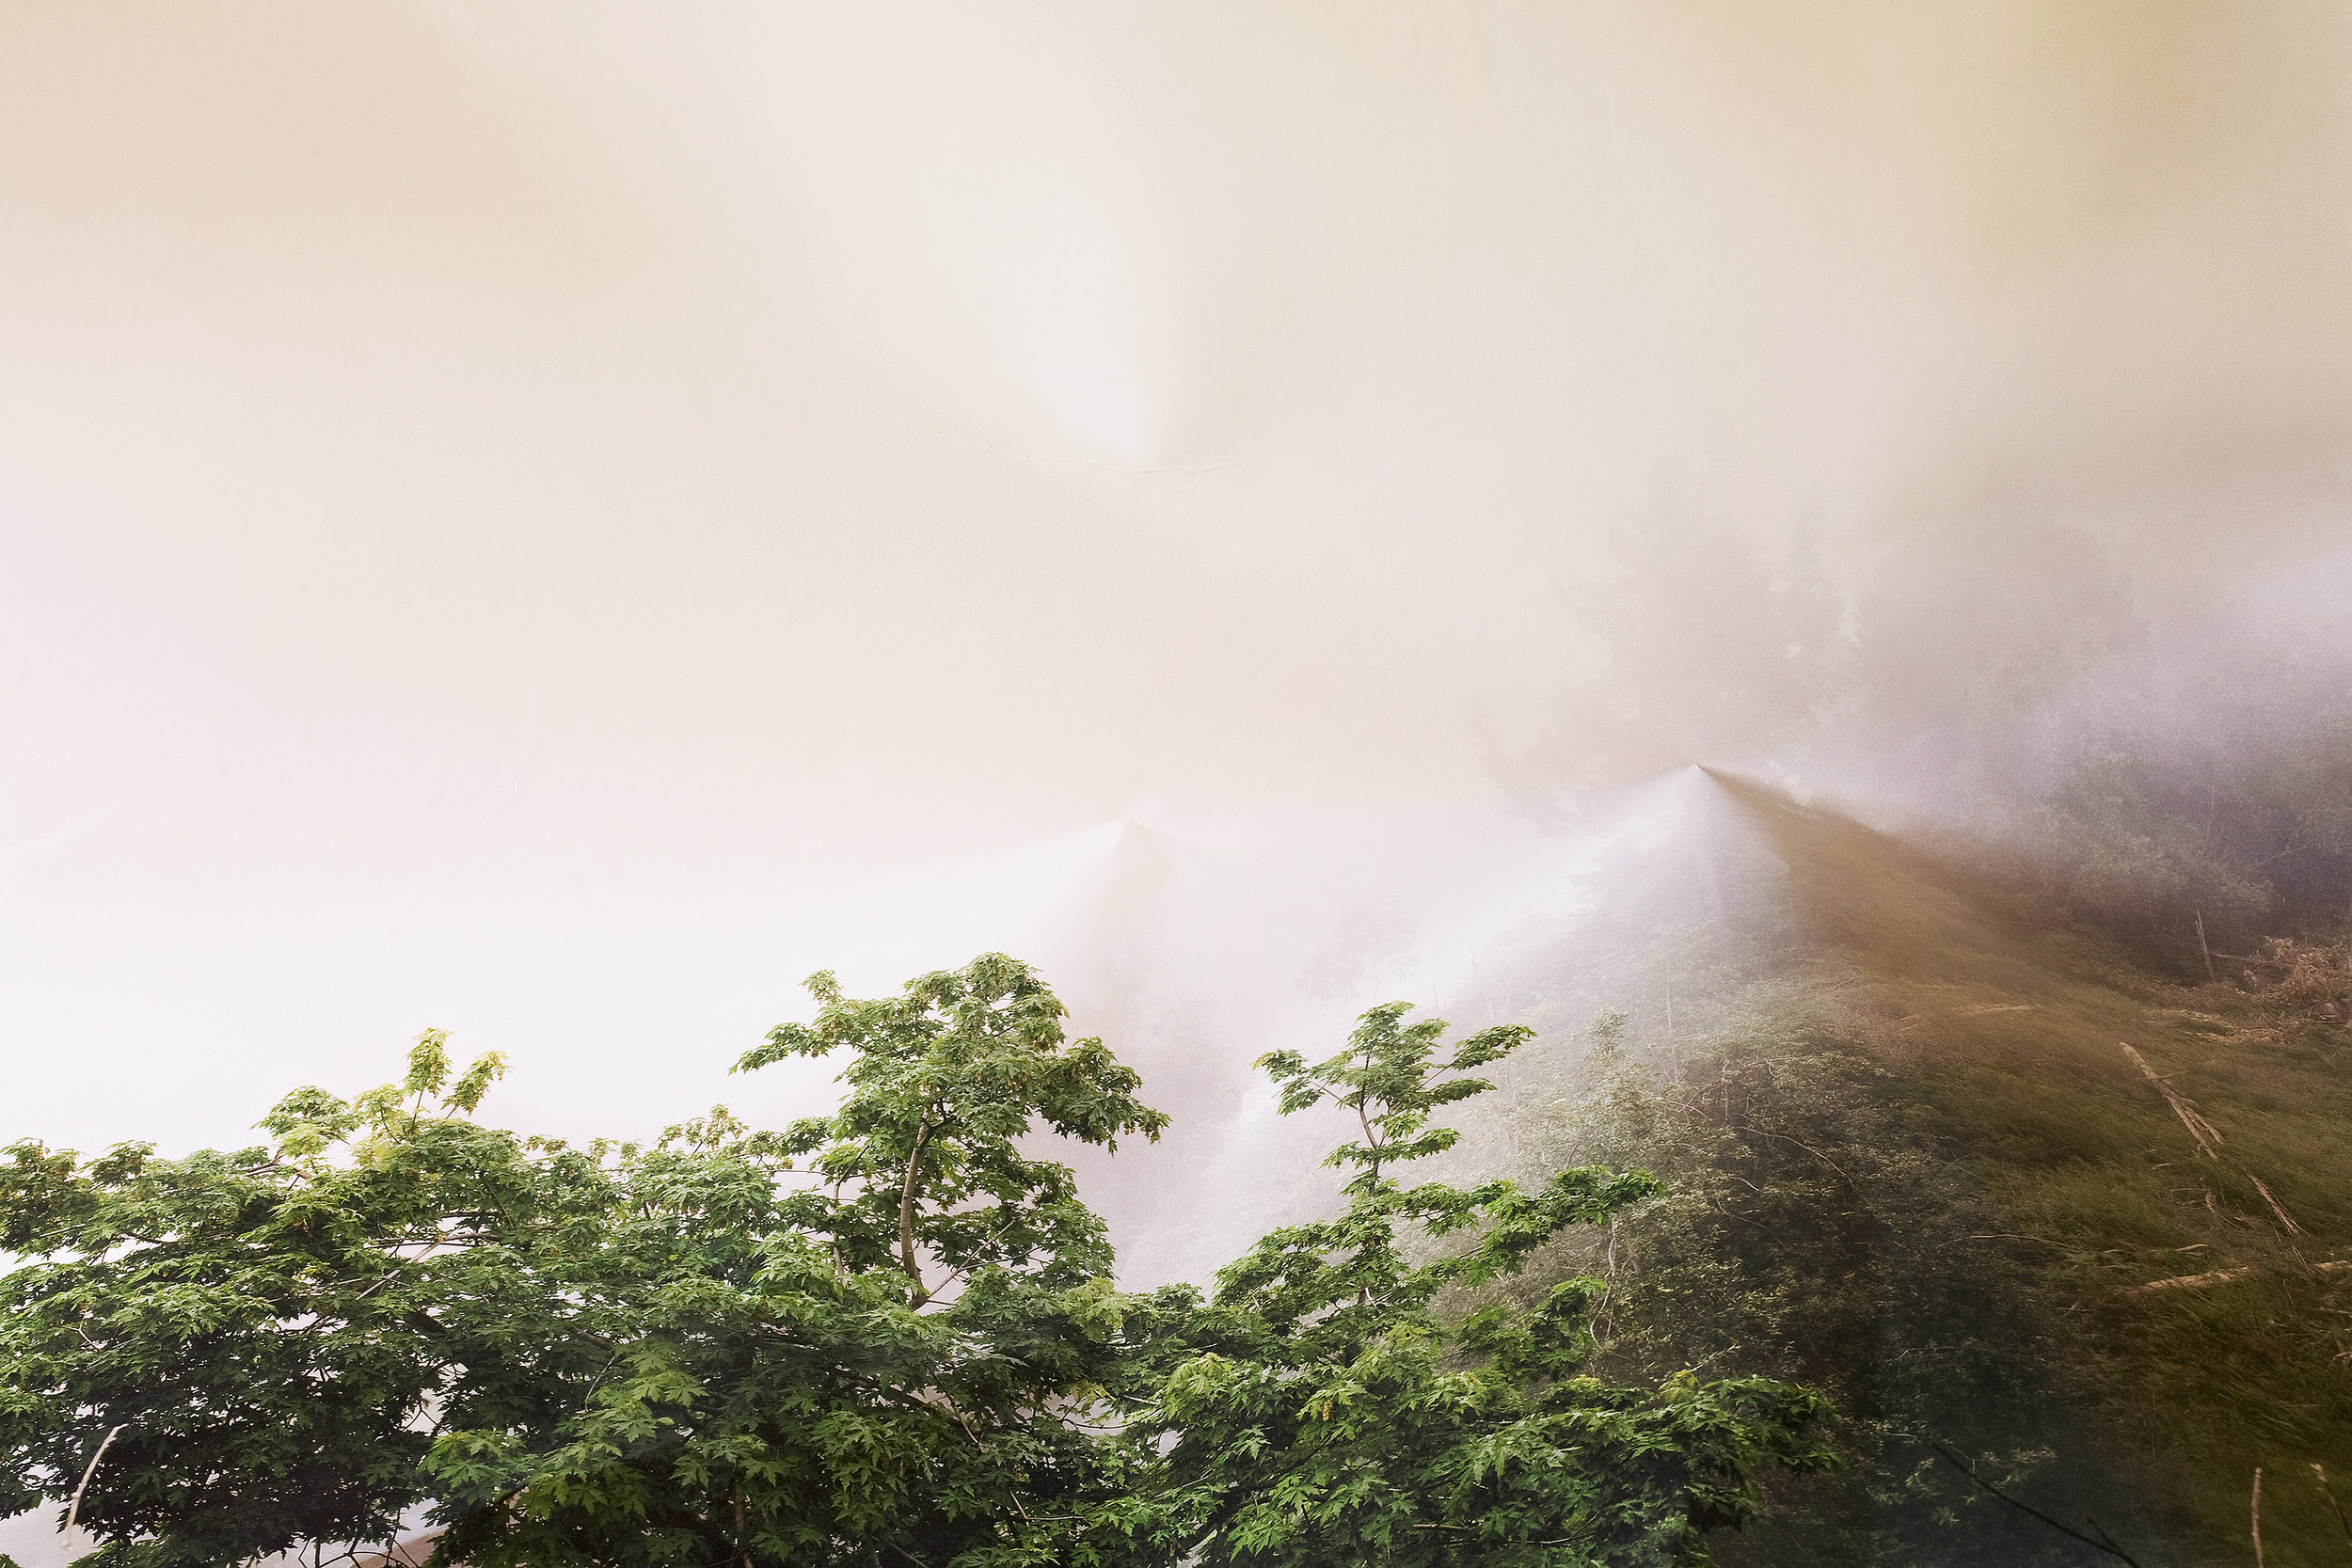 Laura Plageman,  Response to Trees and Fog, California , 2010  Digital pigment print, 16.2 x 24 in, edition of 10   Inquire